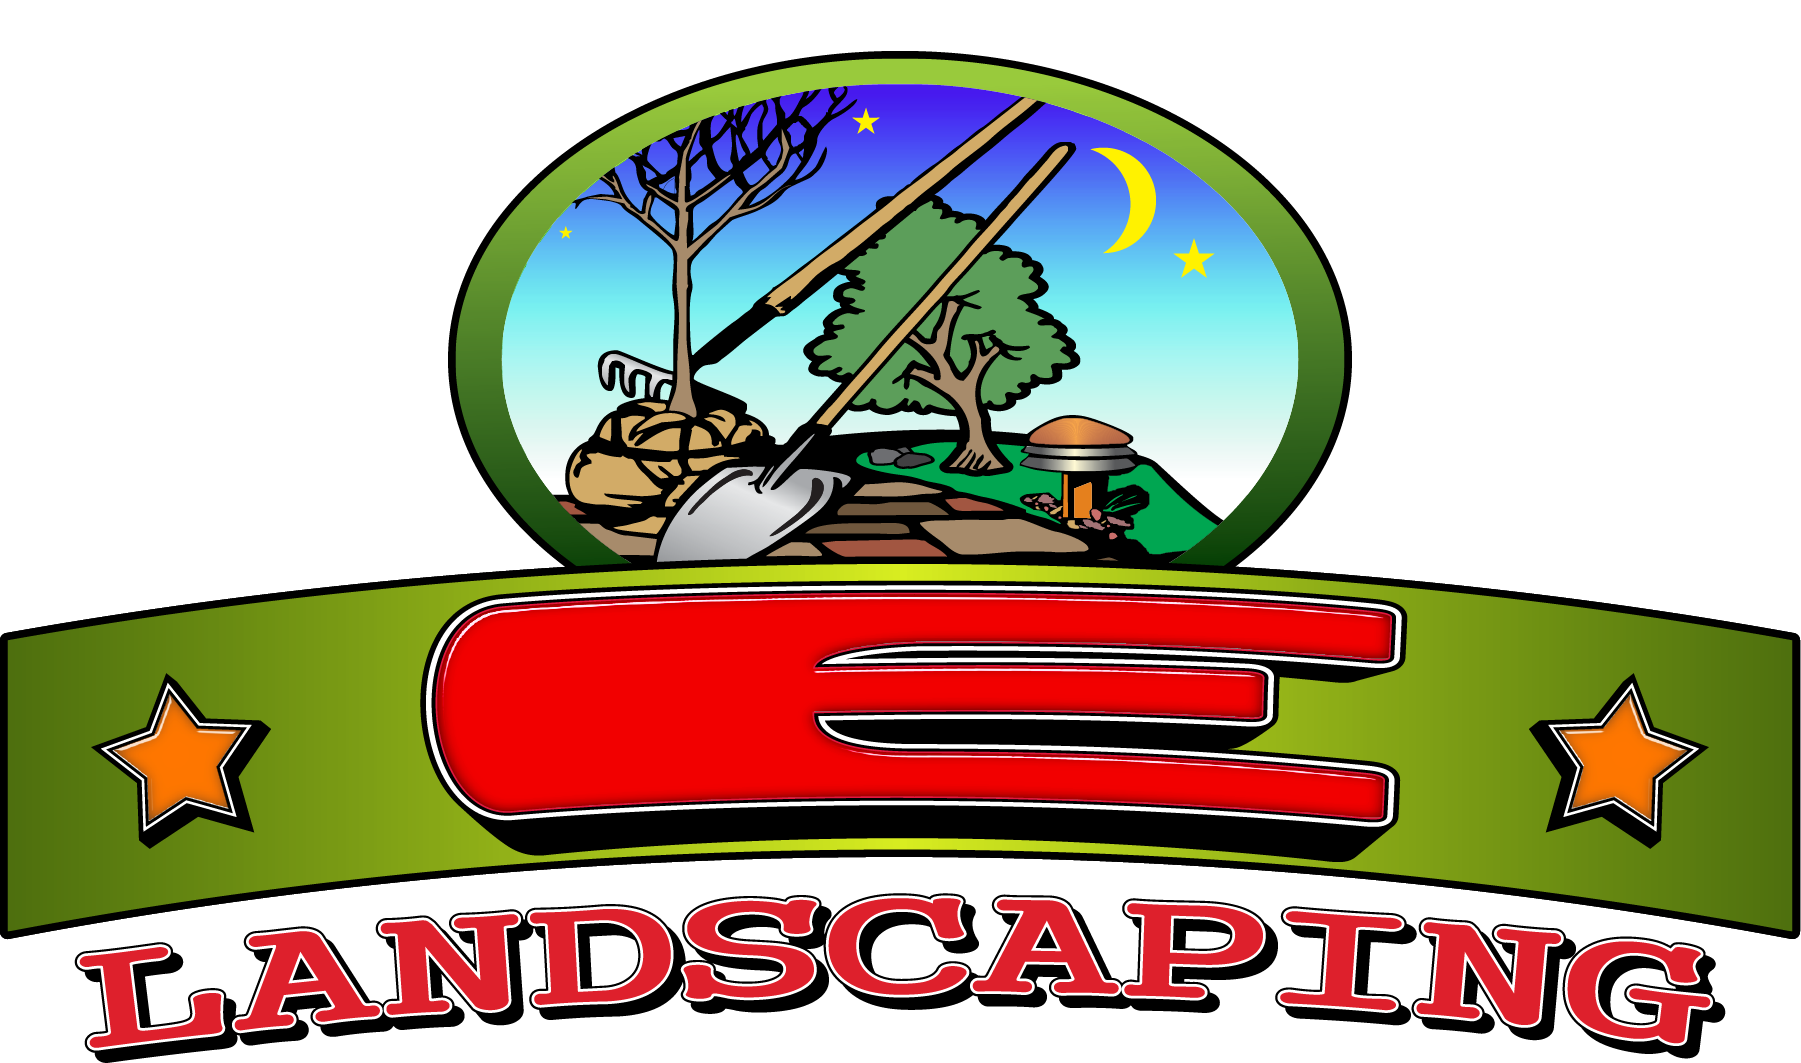 E Landscaping - Treasure Valley Landscaping, Patio & Sprinkler Professionals